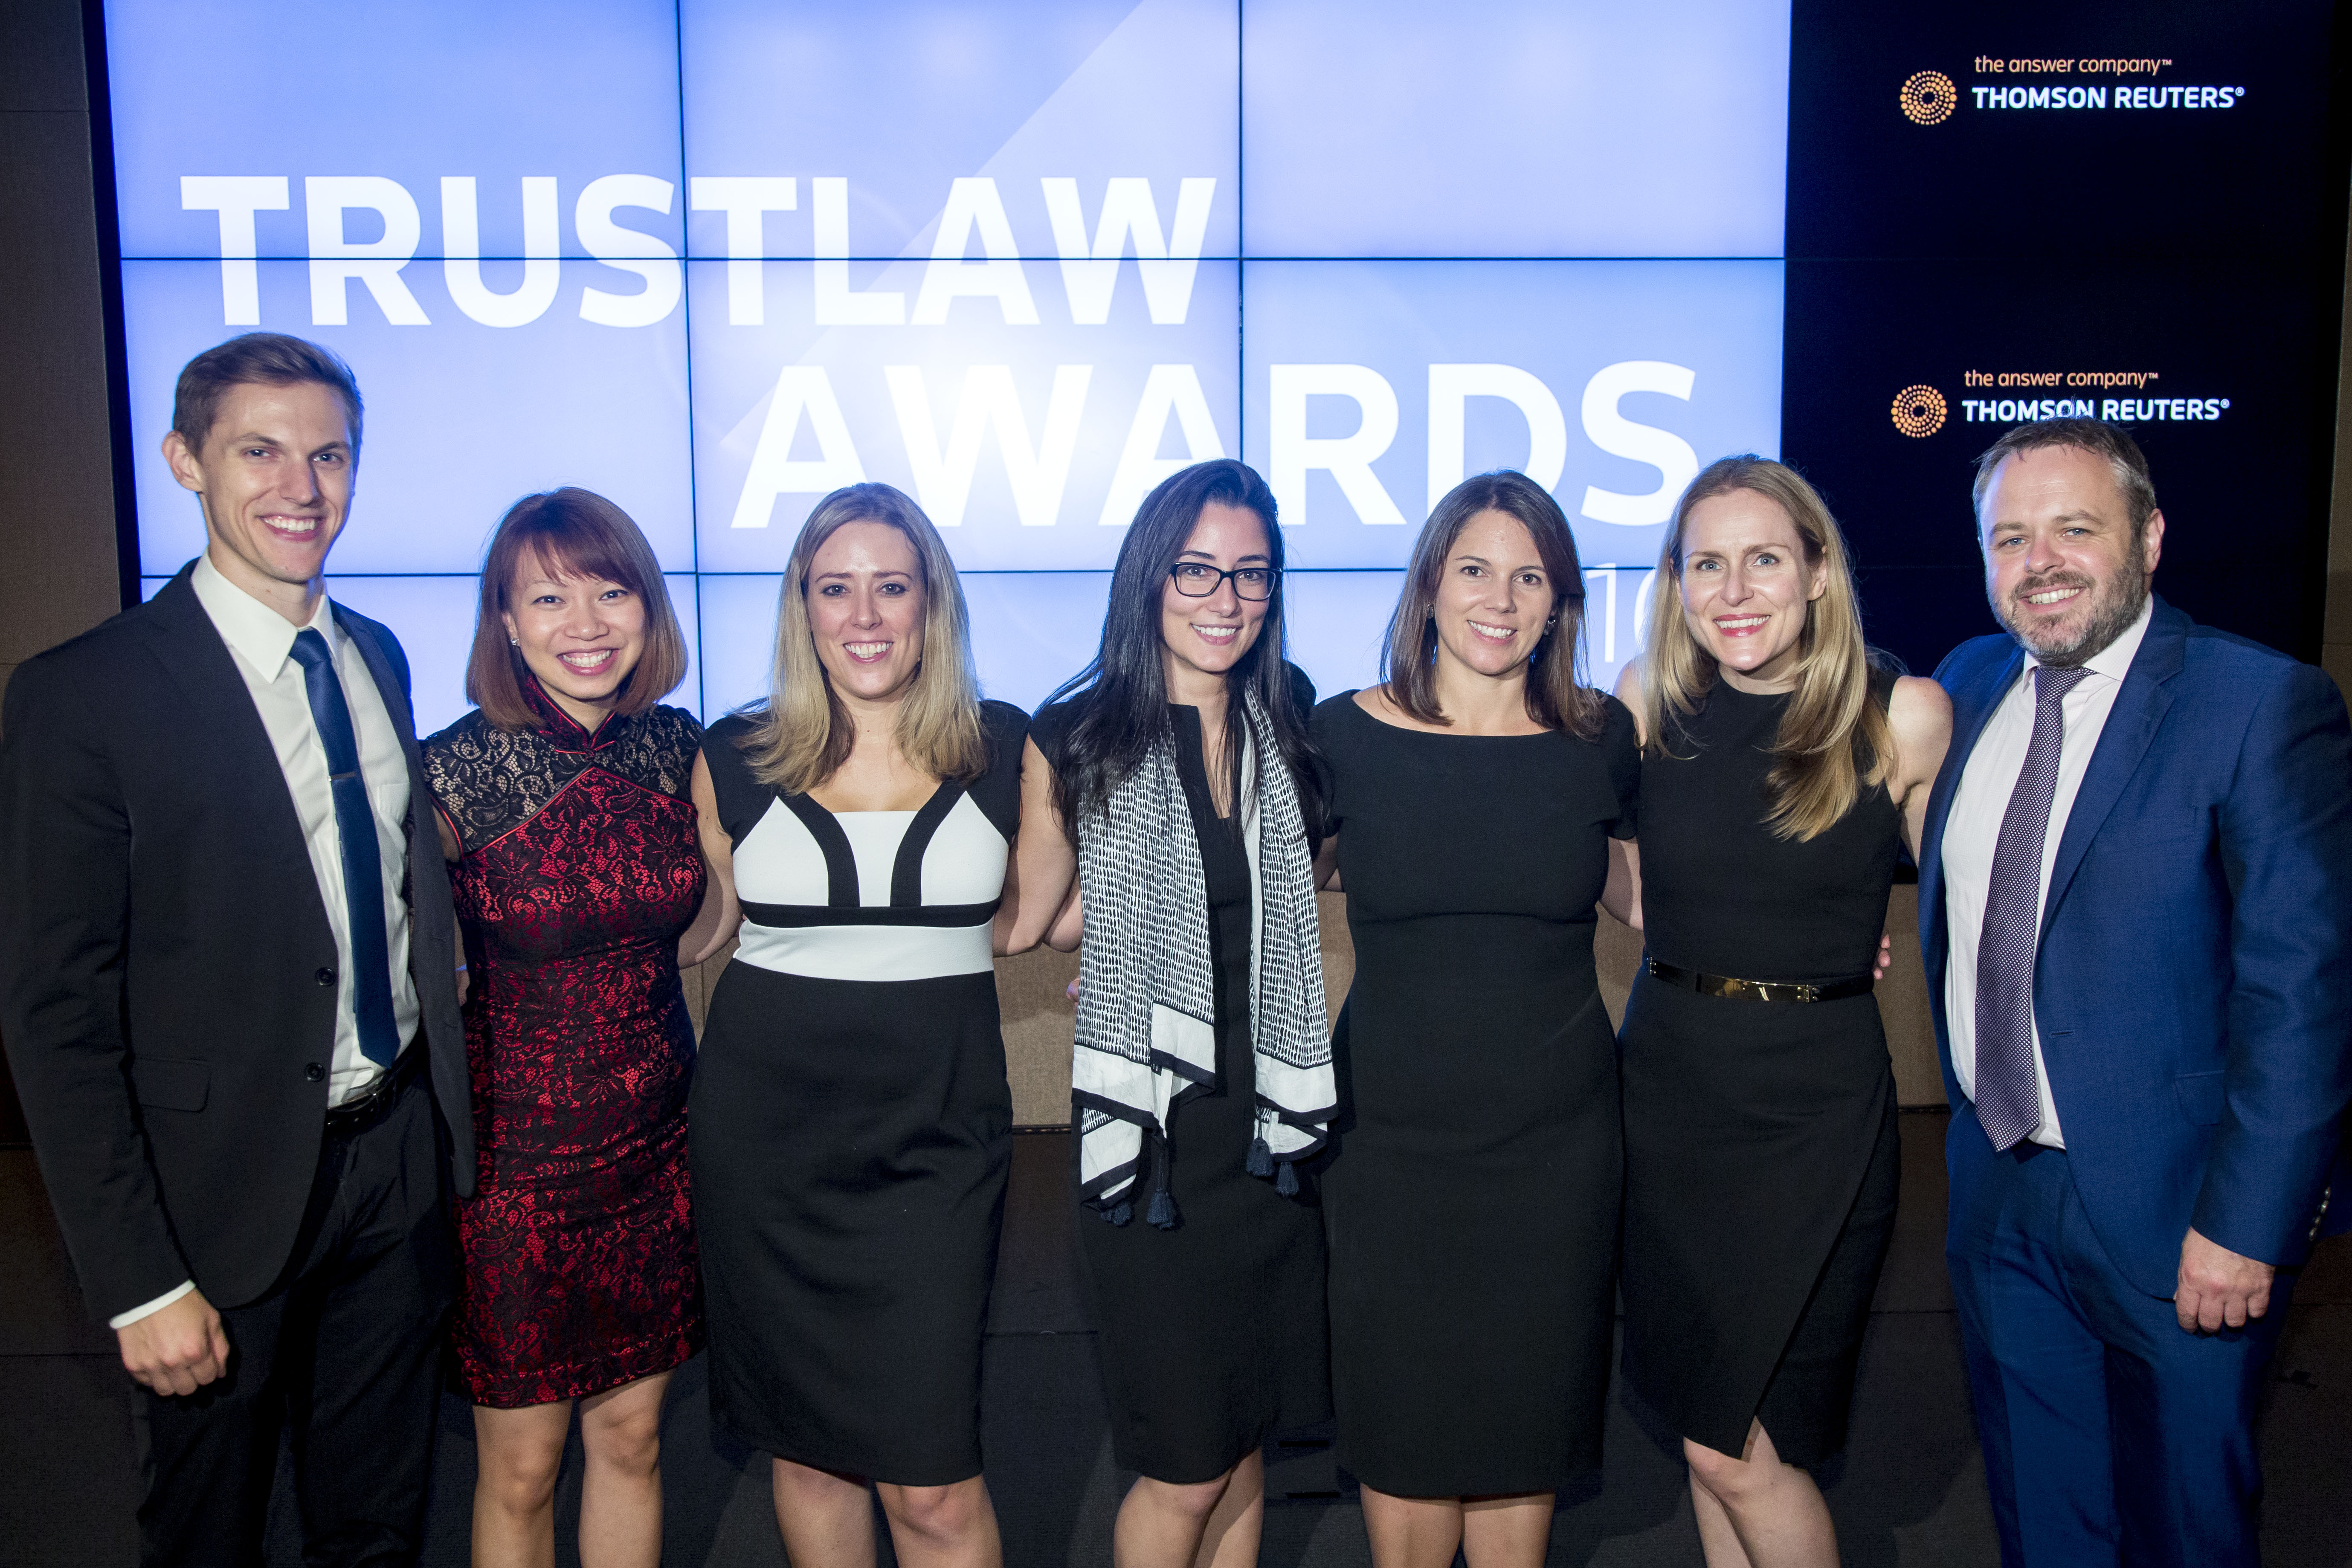 Partner Spotlight: TrustLaw Uses the Power of Law to Build a Better World